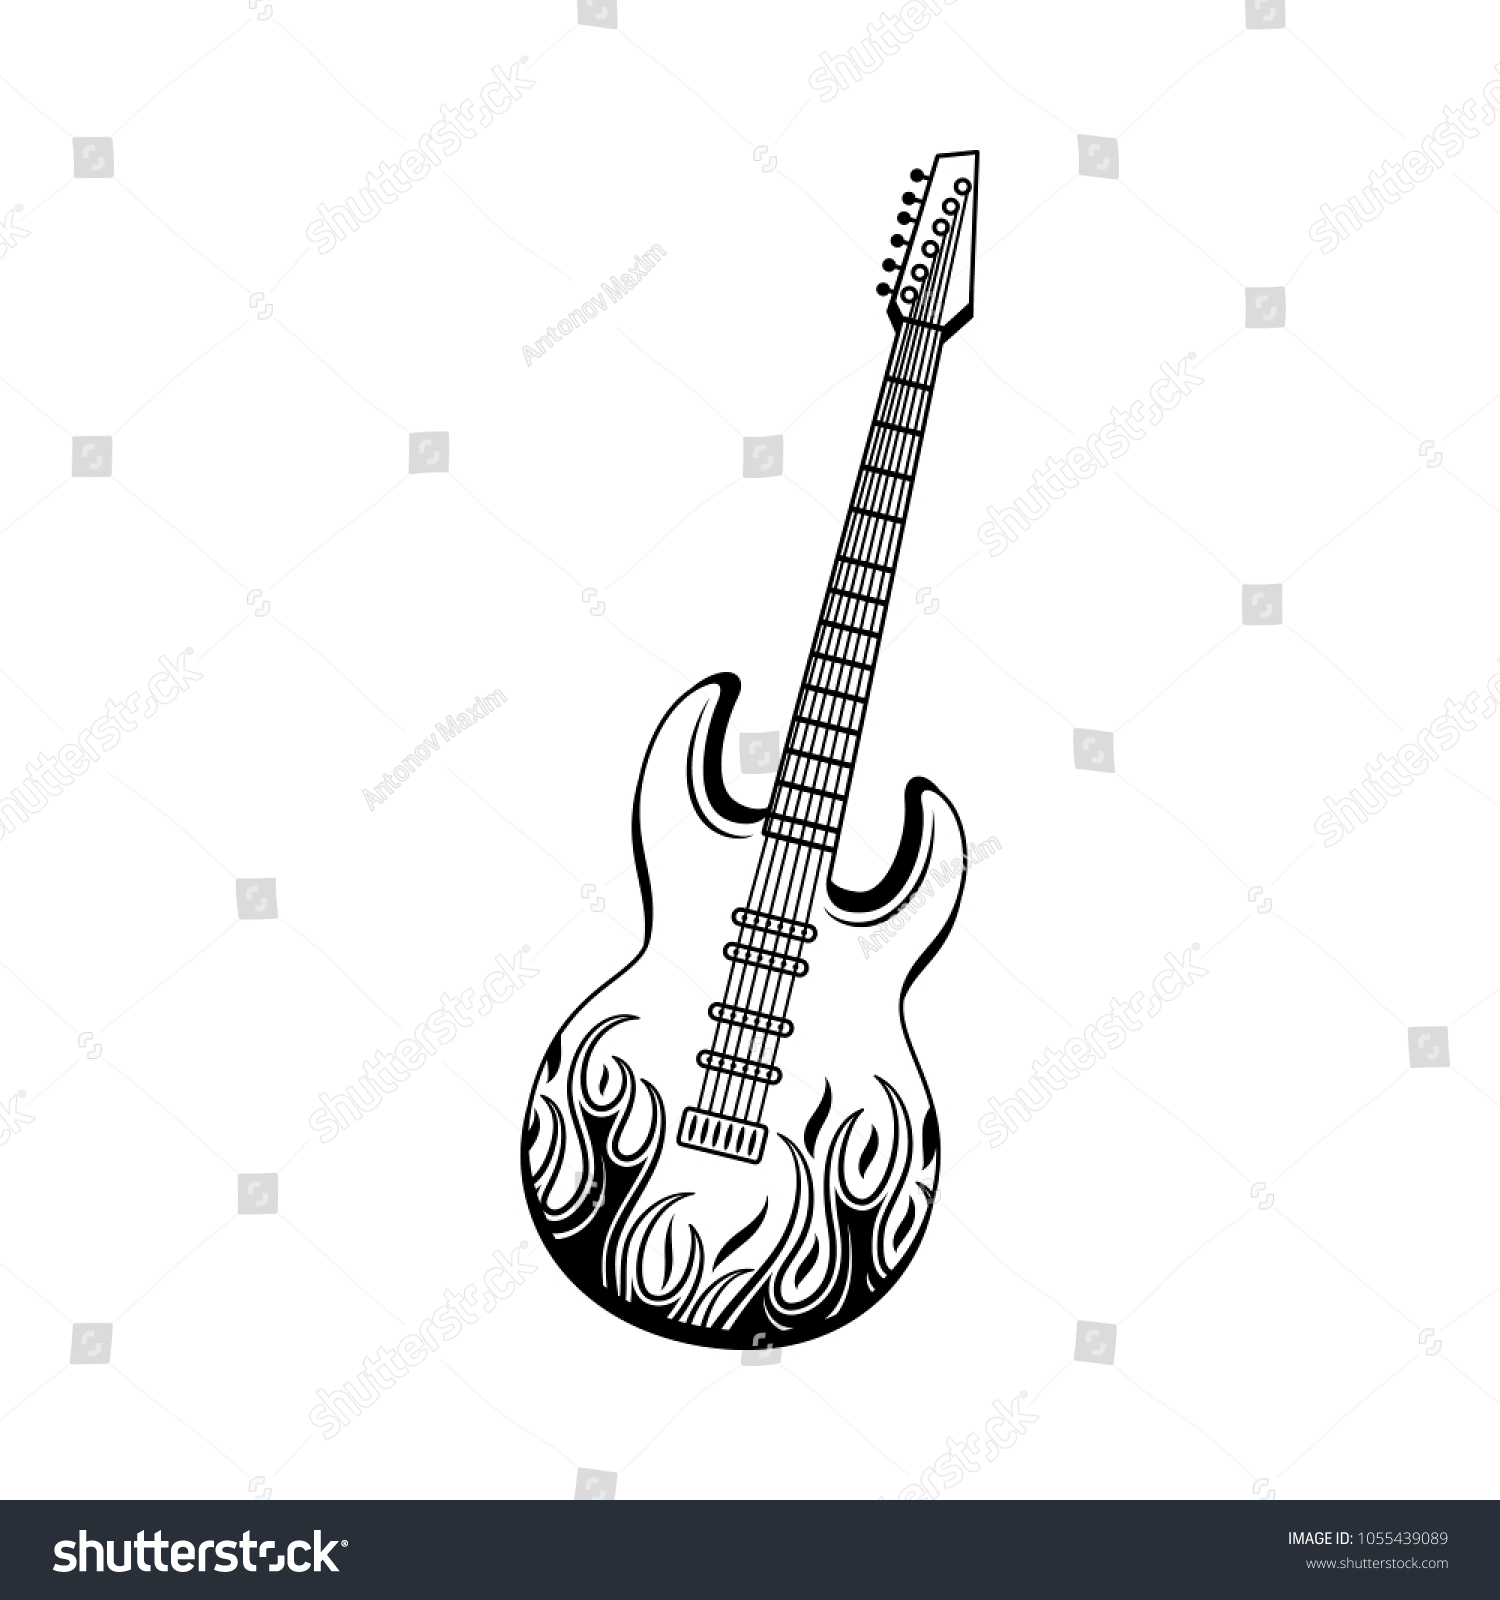 graphic electric guitar black jack cable stock vector (royalty free